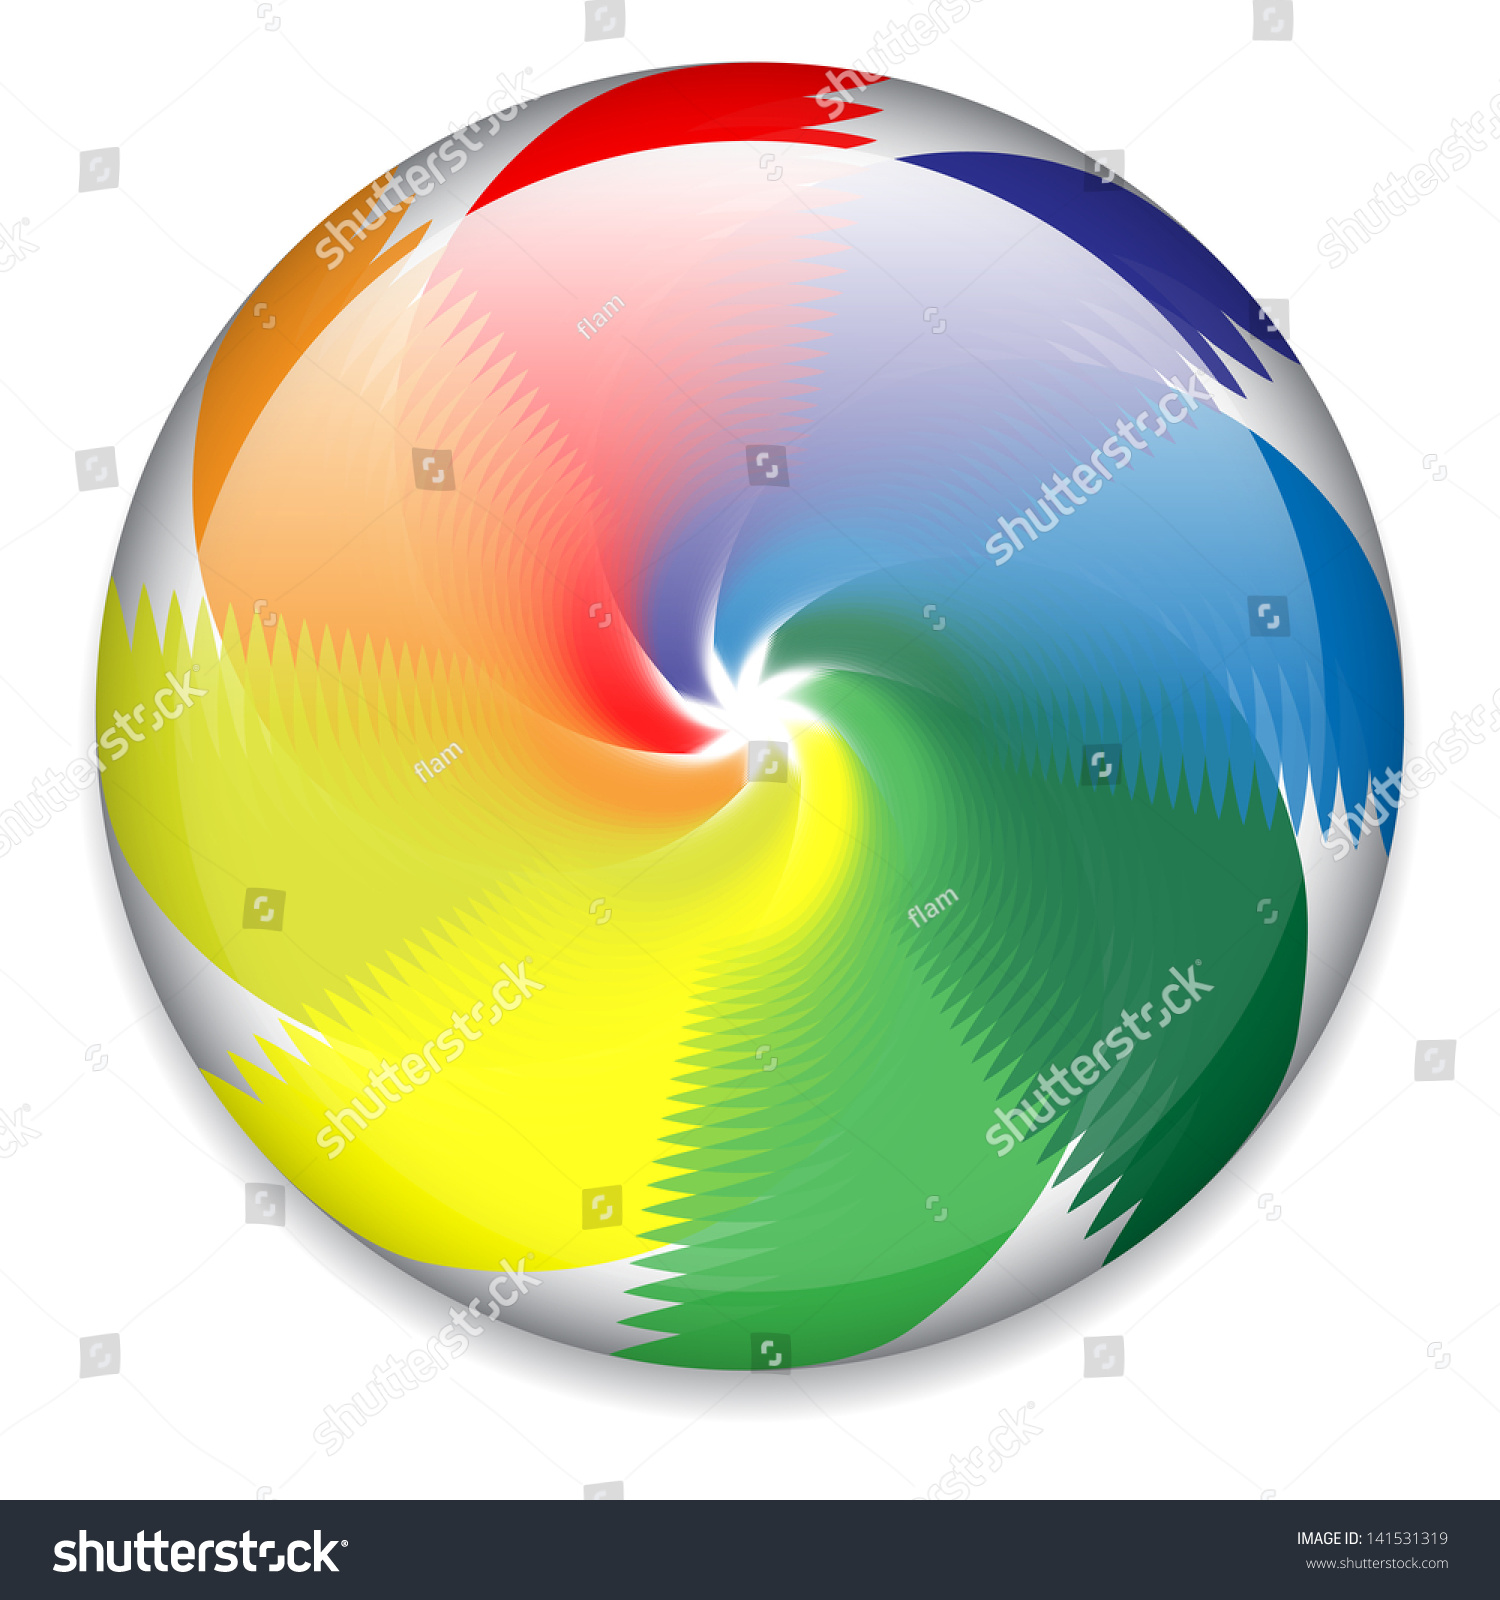 Spinning Candy Wheel Stock Vector (Royalty Free) 141531319